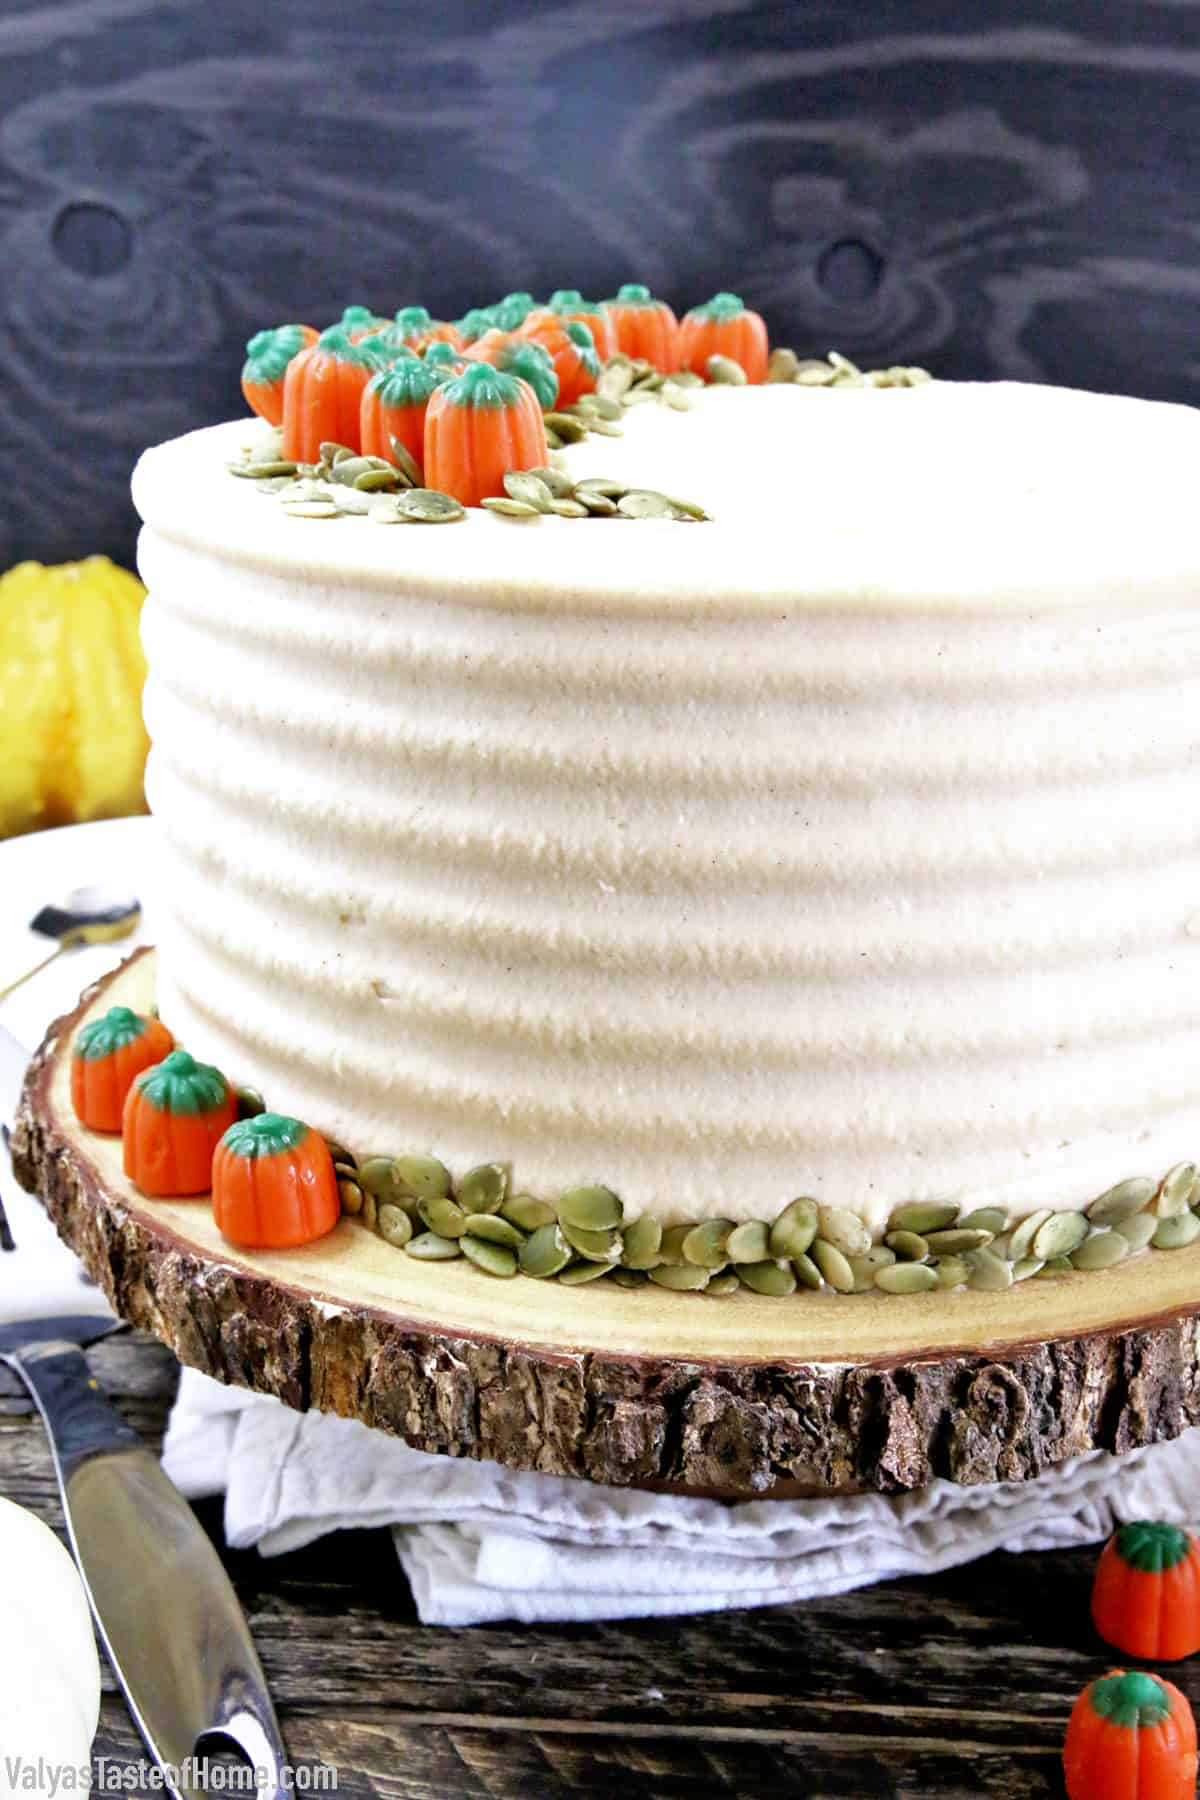 It is coffee. It is pumpkin. It is cake. All in one neat and delicious package! The sponge cake is tender and pillowy soft. Light, airy, moist, bursting with all the cravealbe Fall flavors: creamy pumpkin spice and coffee